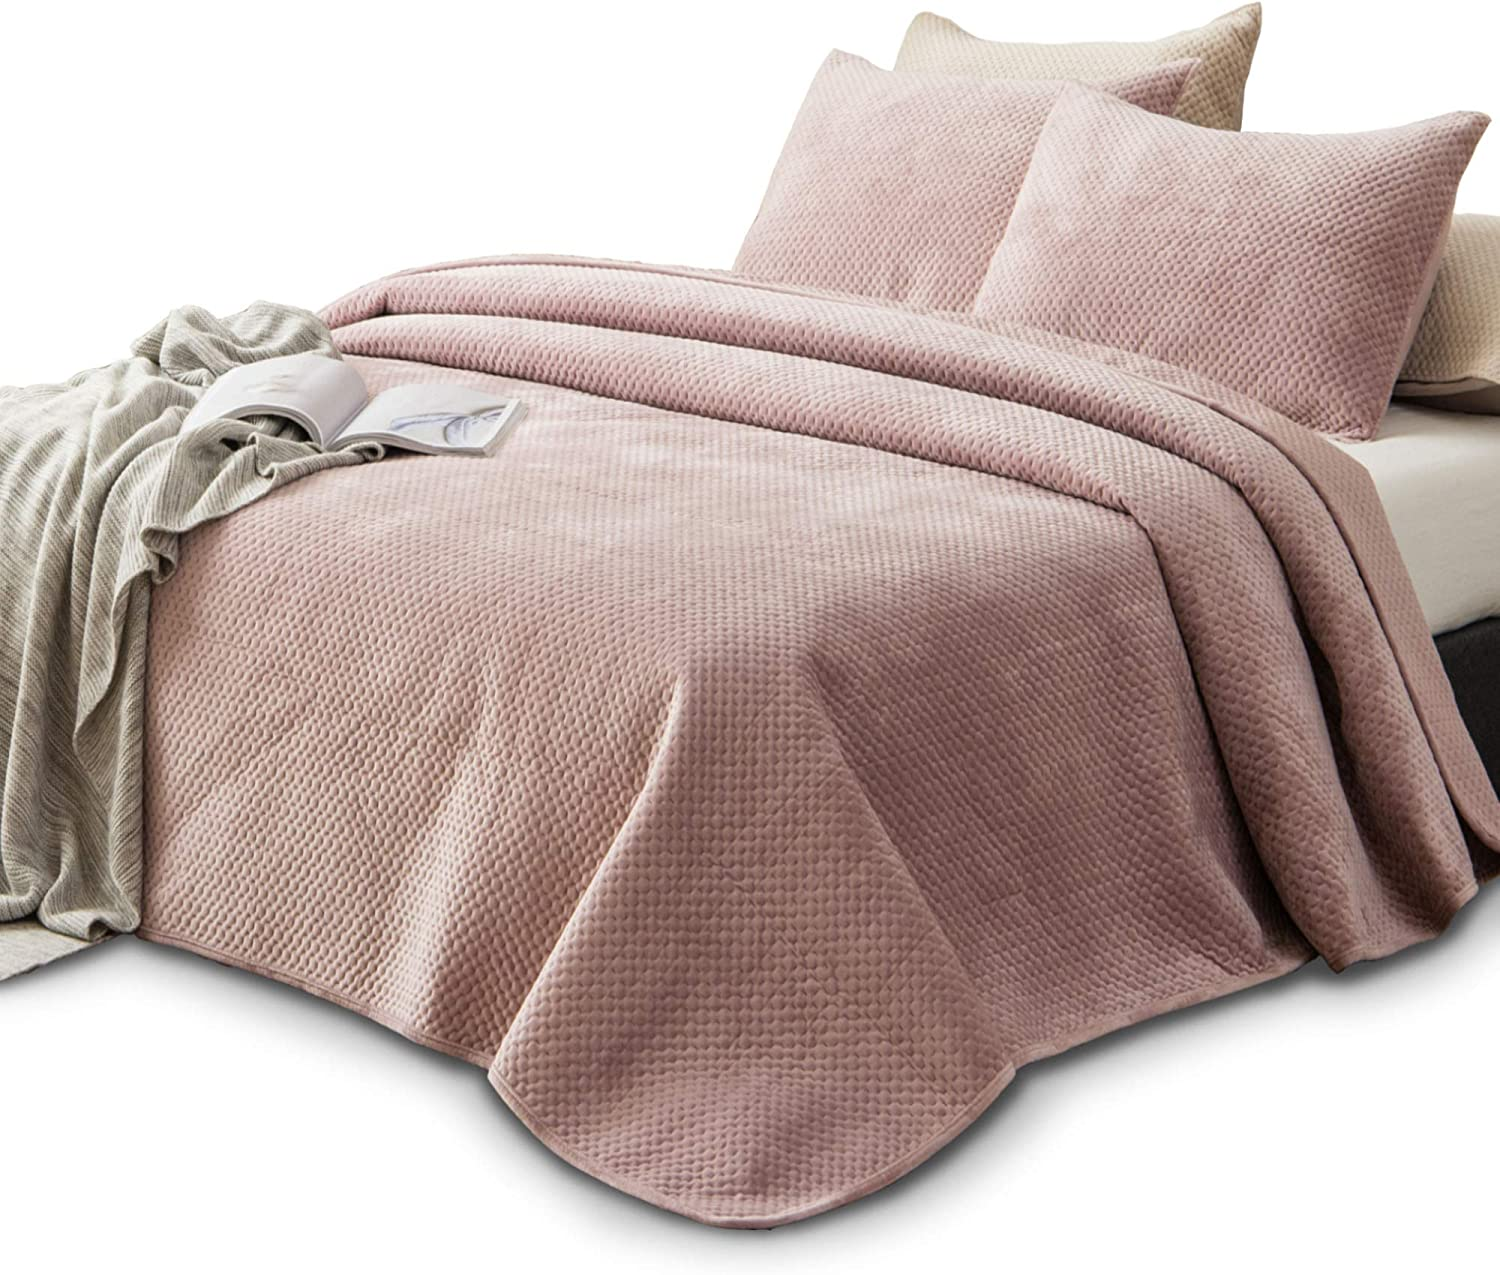 KASENTEX Plush Poly-Velvet Lavish Design Quilt Set with Brushed Microfiber - Luxurious Bedding Soft & Warm Coverlet - Machine Washable Coverlet (Dust Rose Pink, King + 2 Shams)